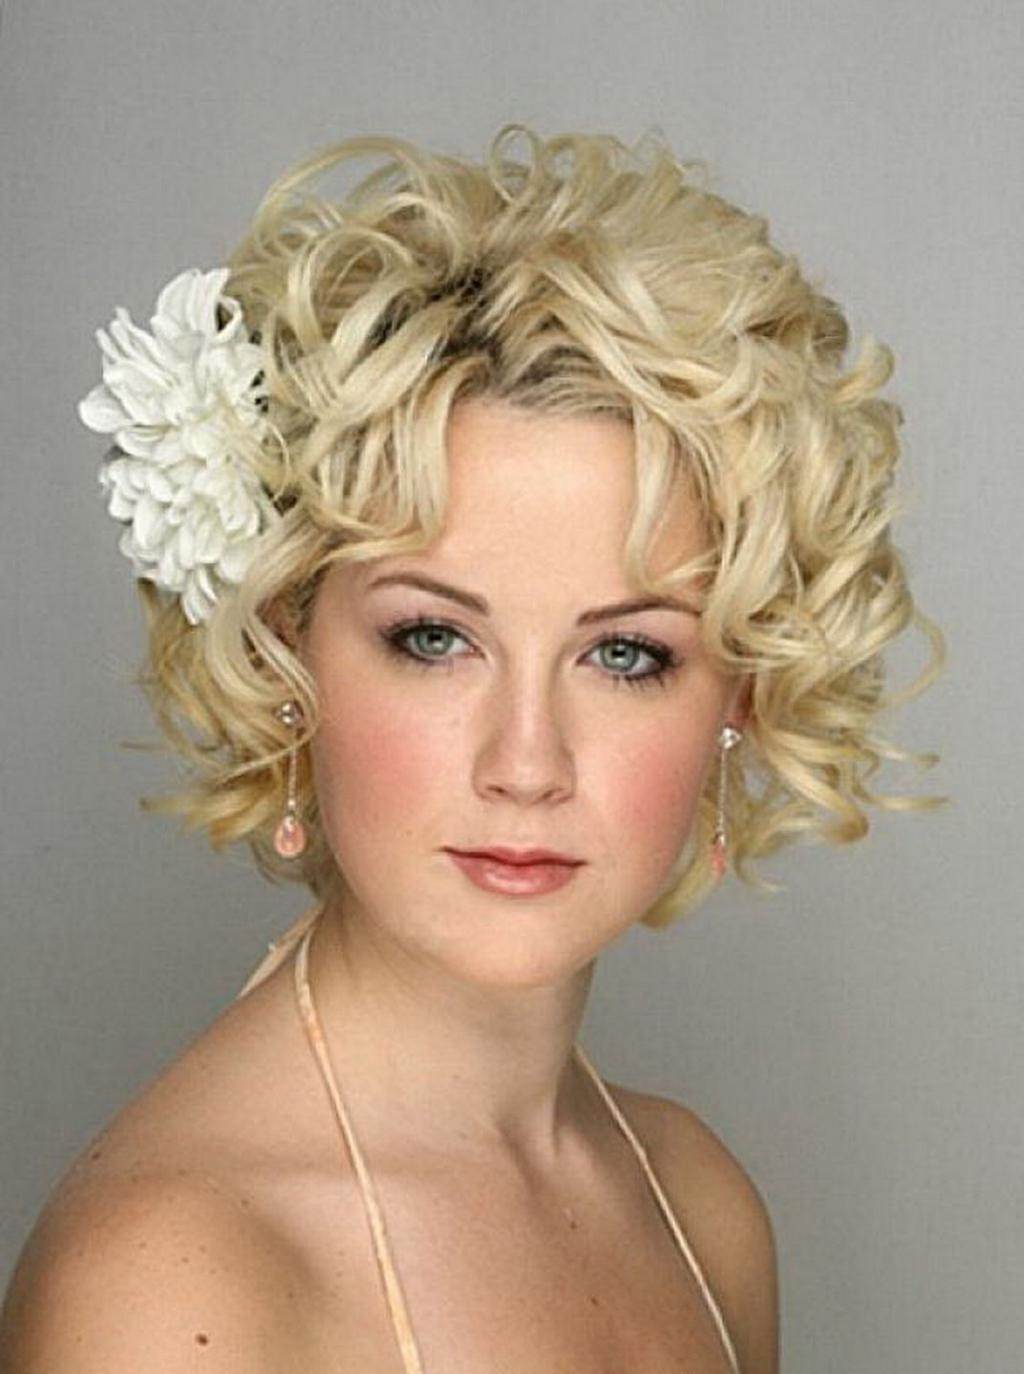 Short Wedding Hairstyles Look Pretty With Bridal Ideas Bridesmaid Throughout Favorite Short Wedding Hairstyles For Bridesmaids (View 14 of 15)